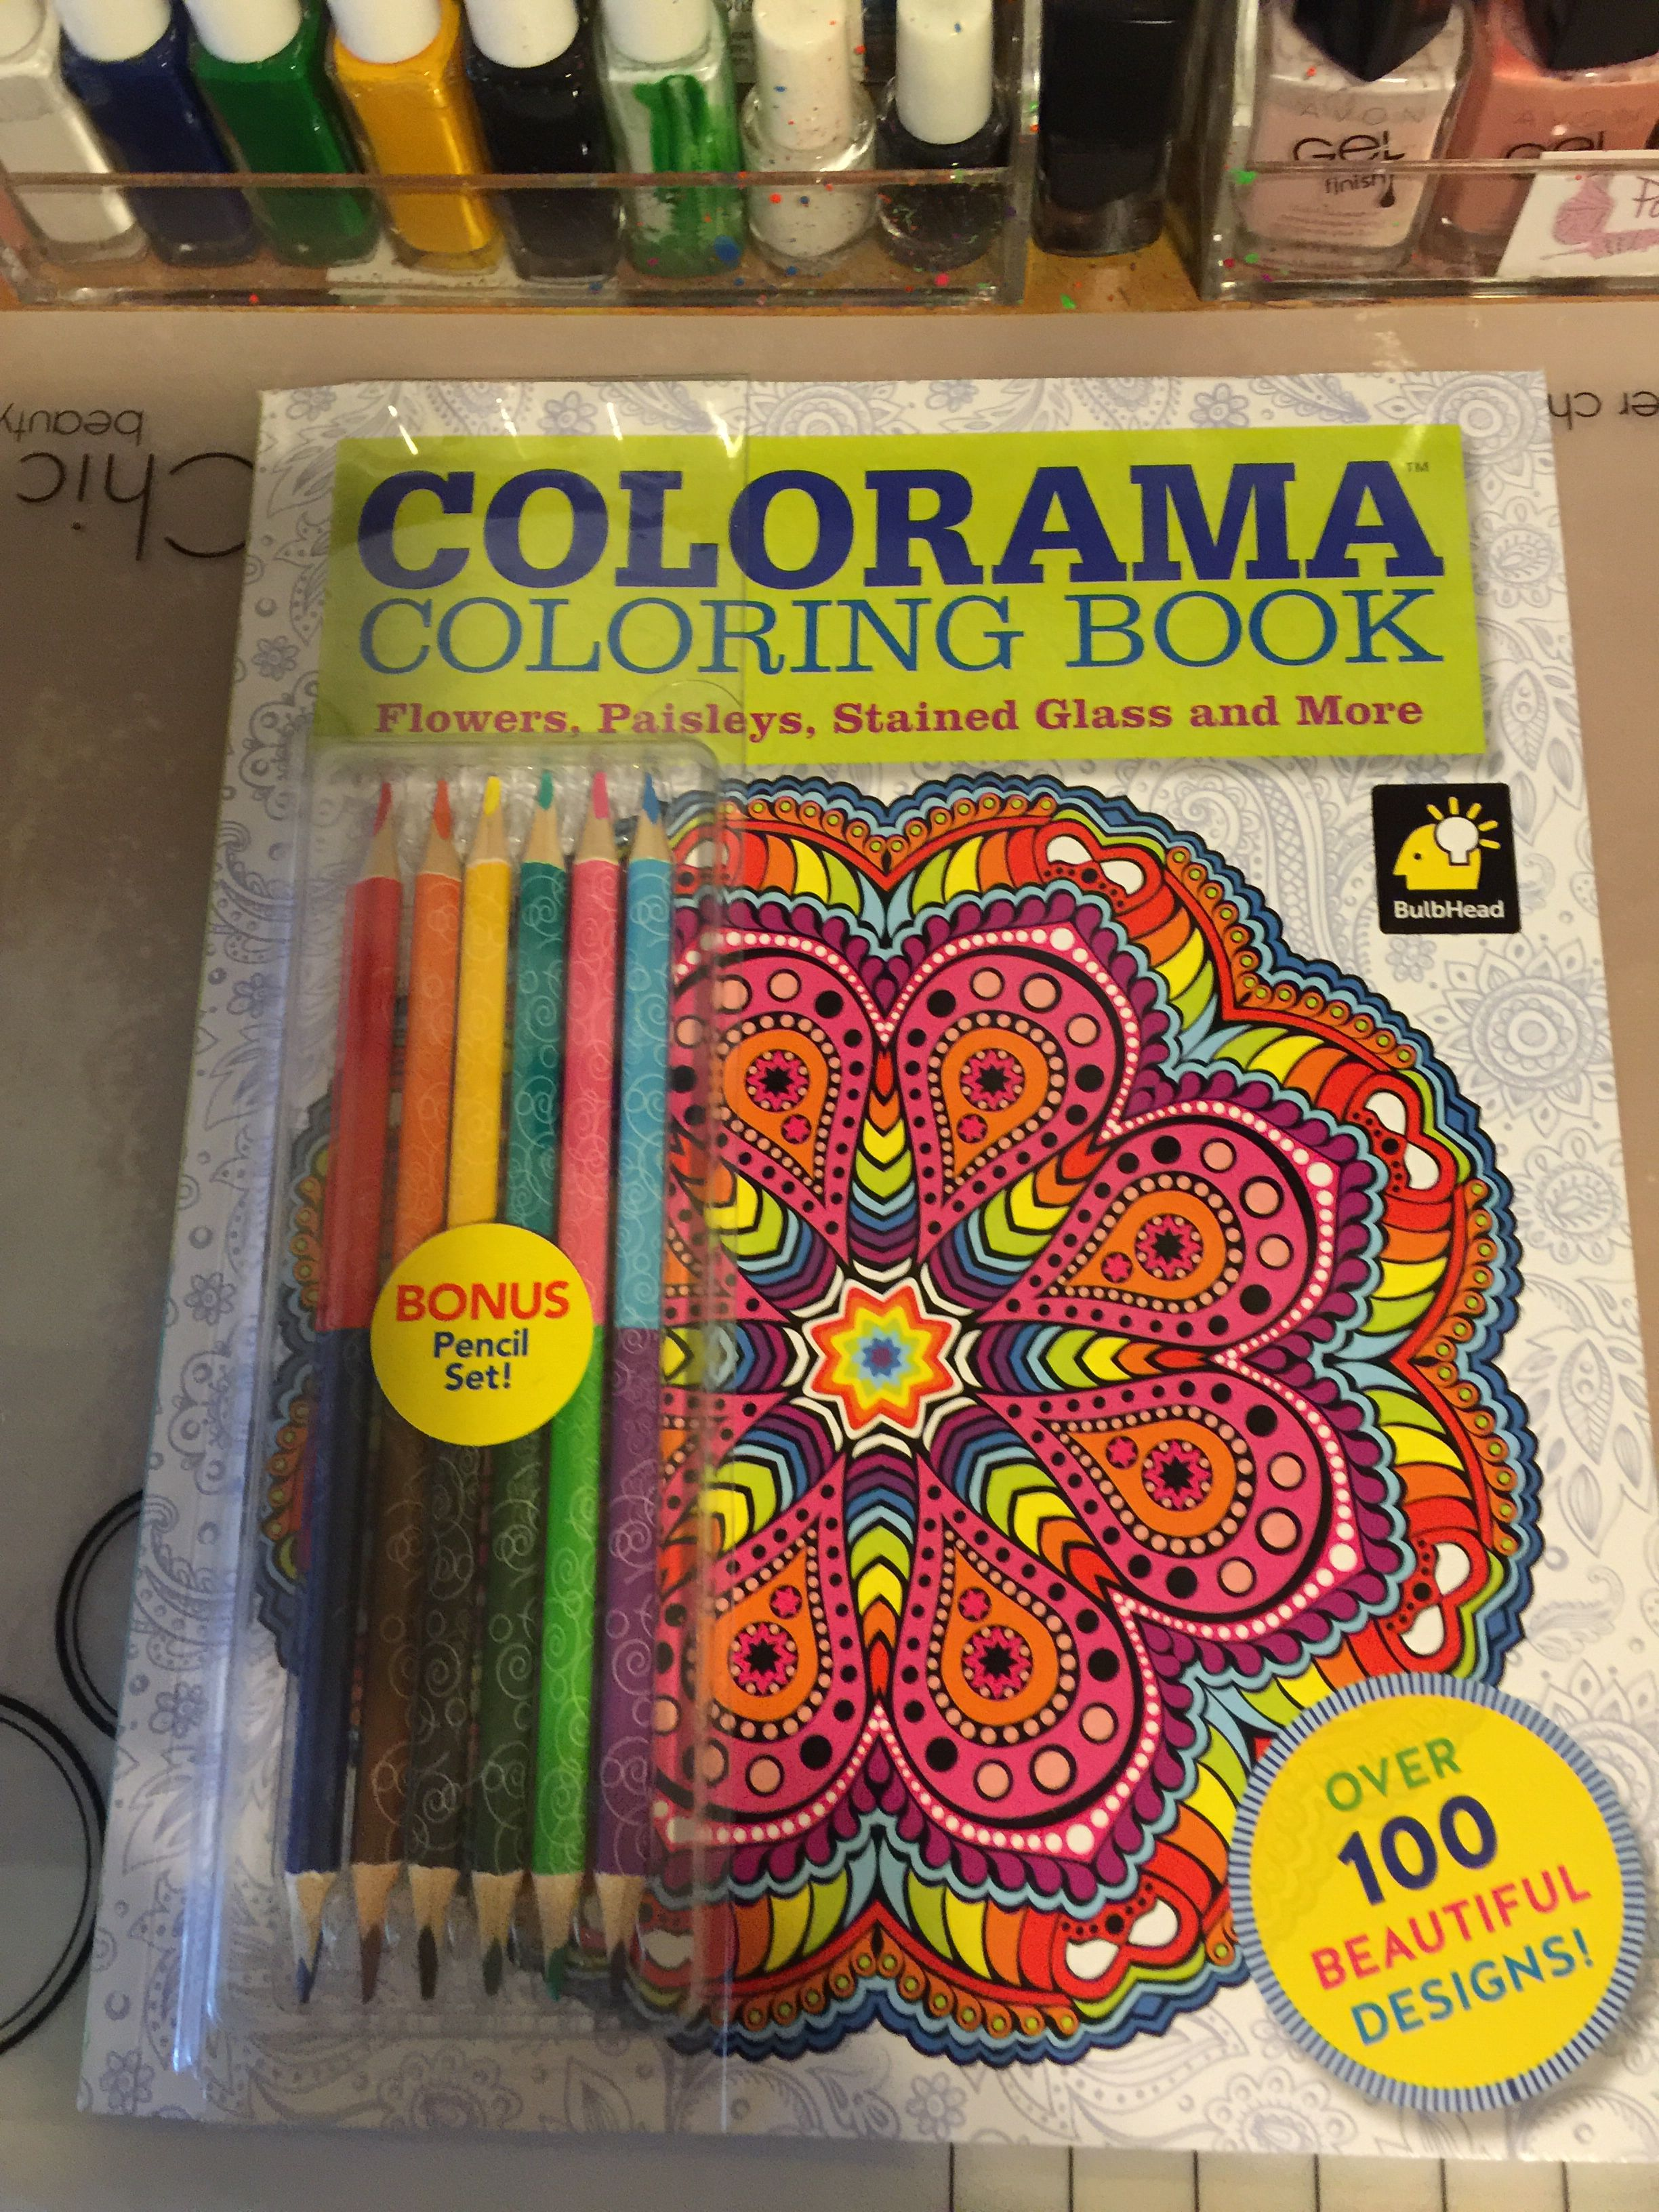 Colorama Coloring Book Mandalas From Walmart I Got This For Christmas